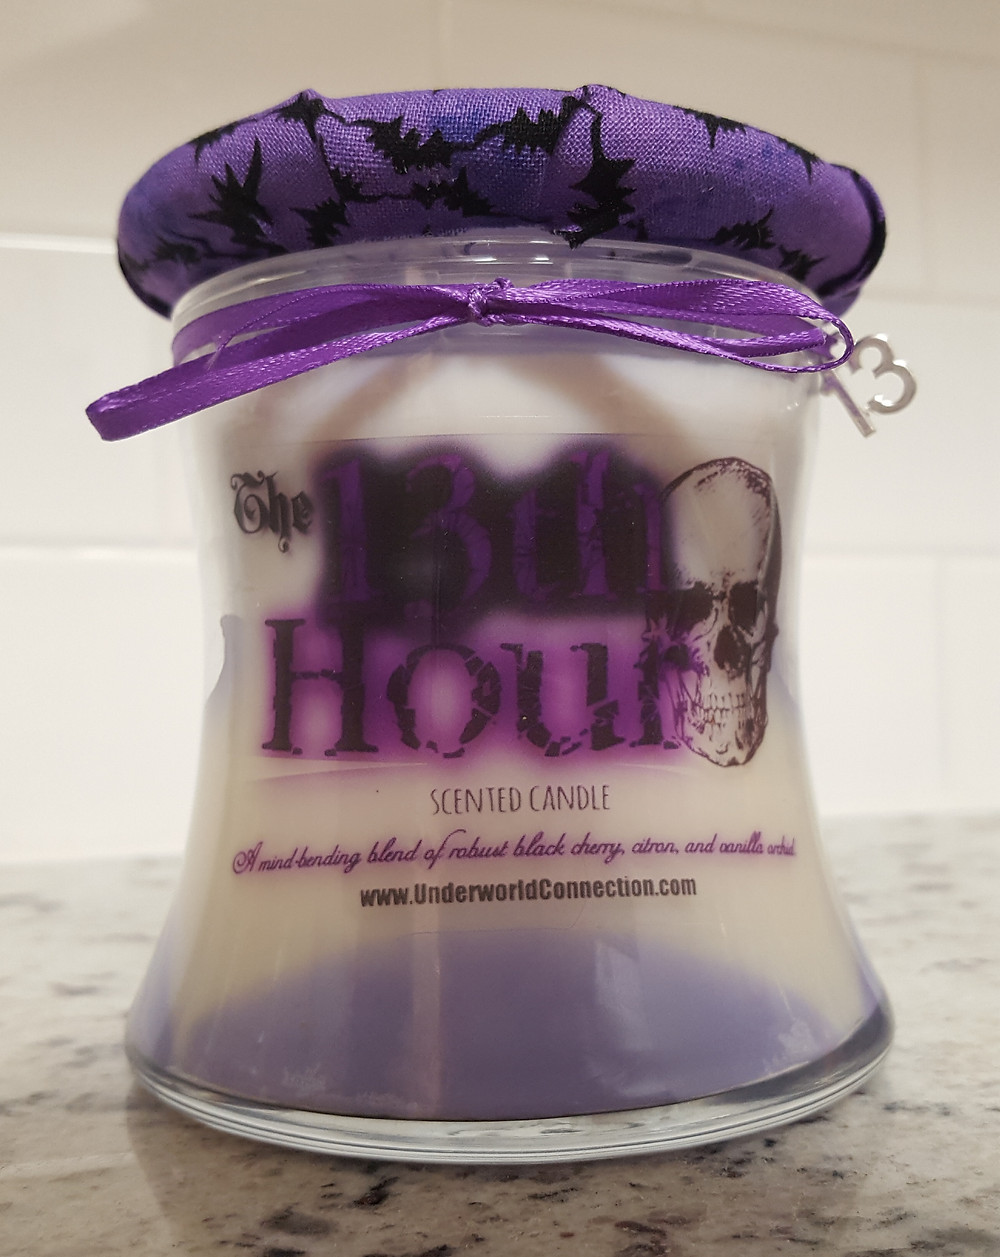 The 13th Hour candle